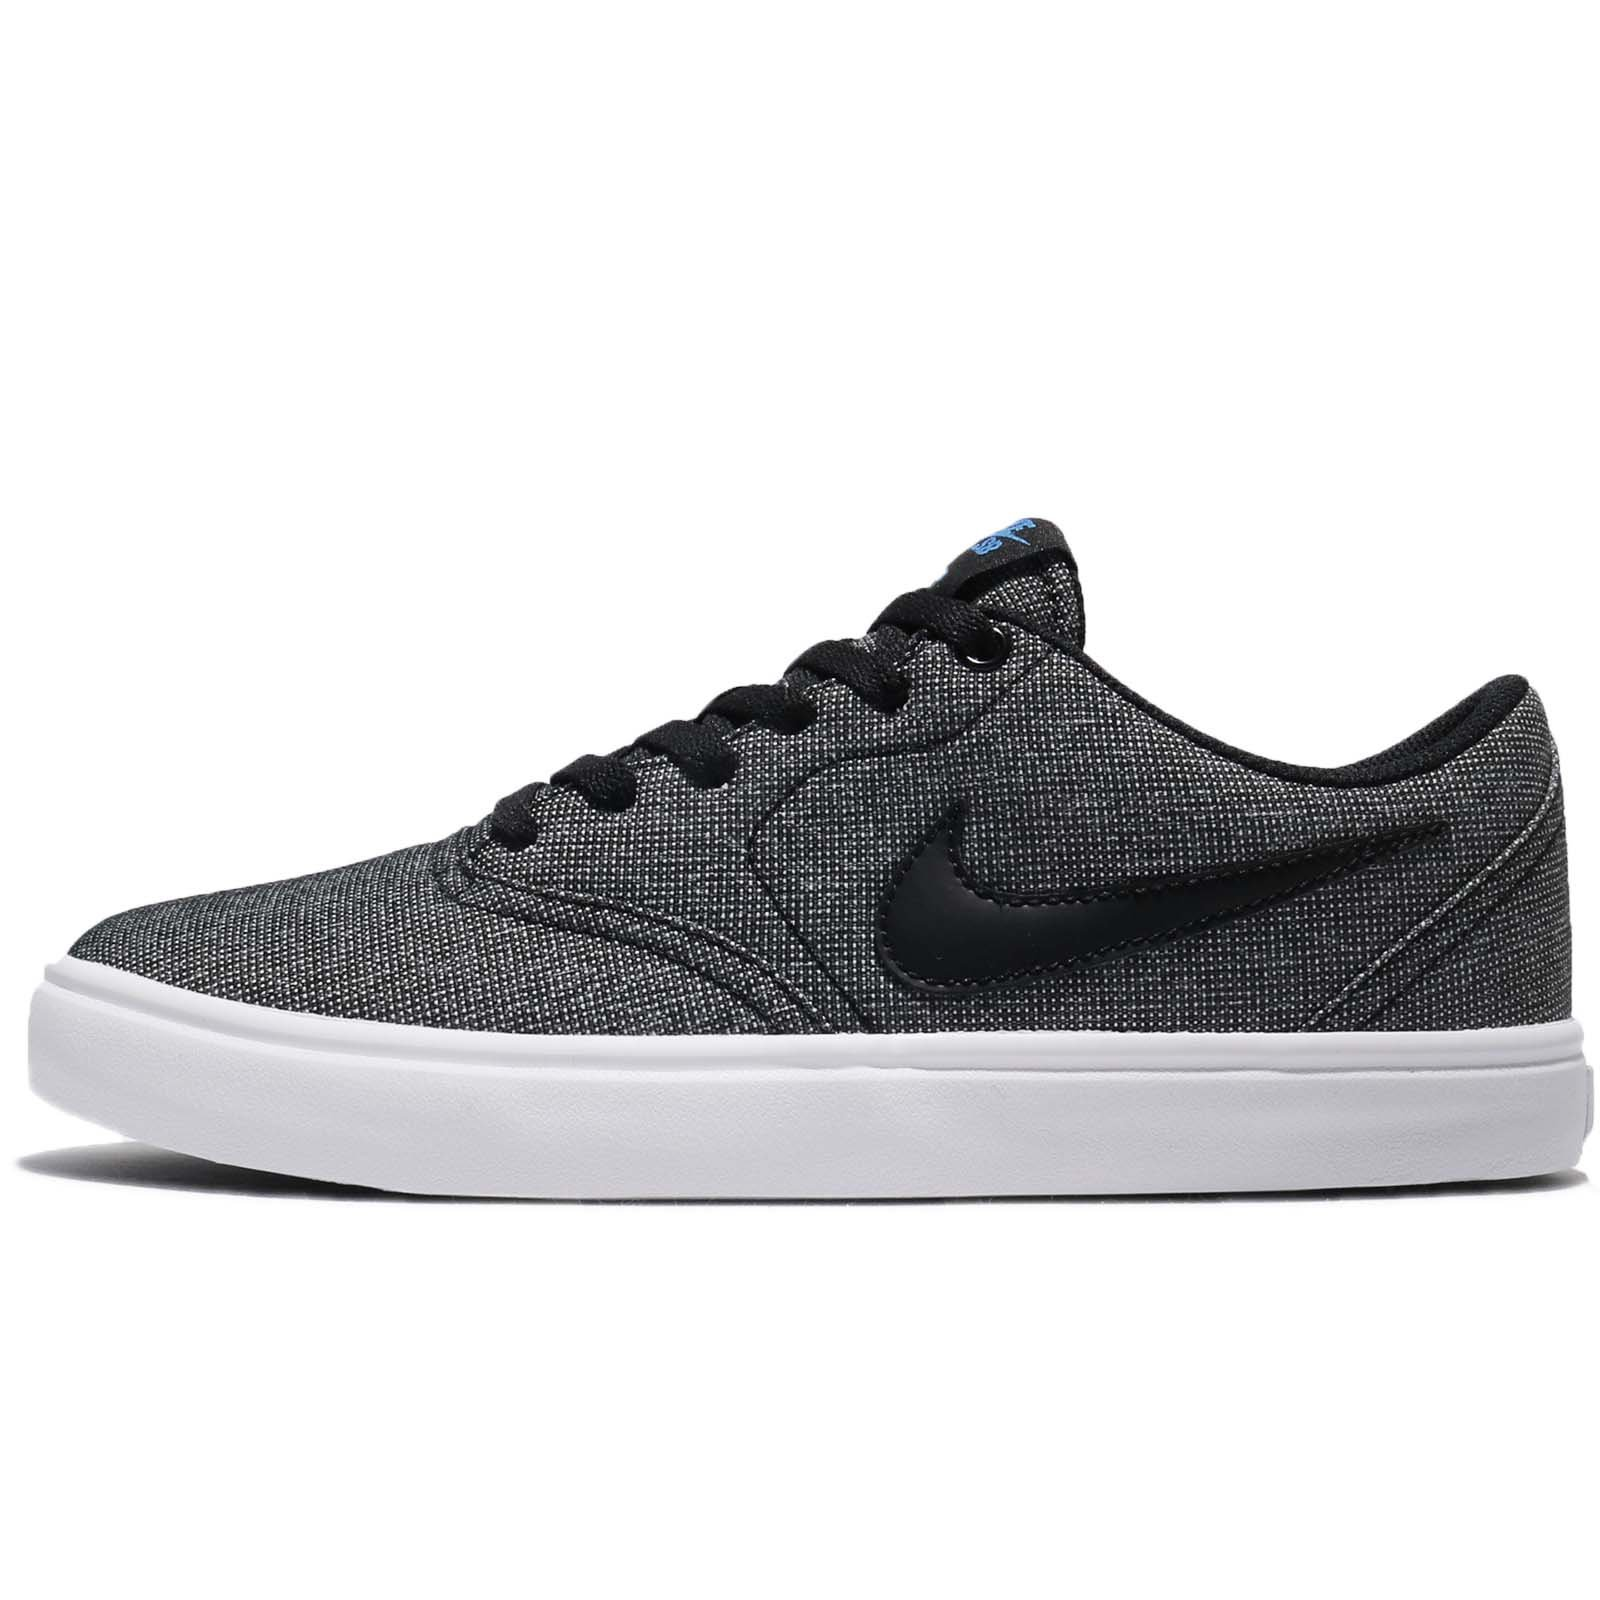 Nike Mens Check Solar Solar Sole Skateboarding Shoes Black 4.5 Medium (D) by Nike (Image #1)